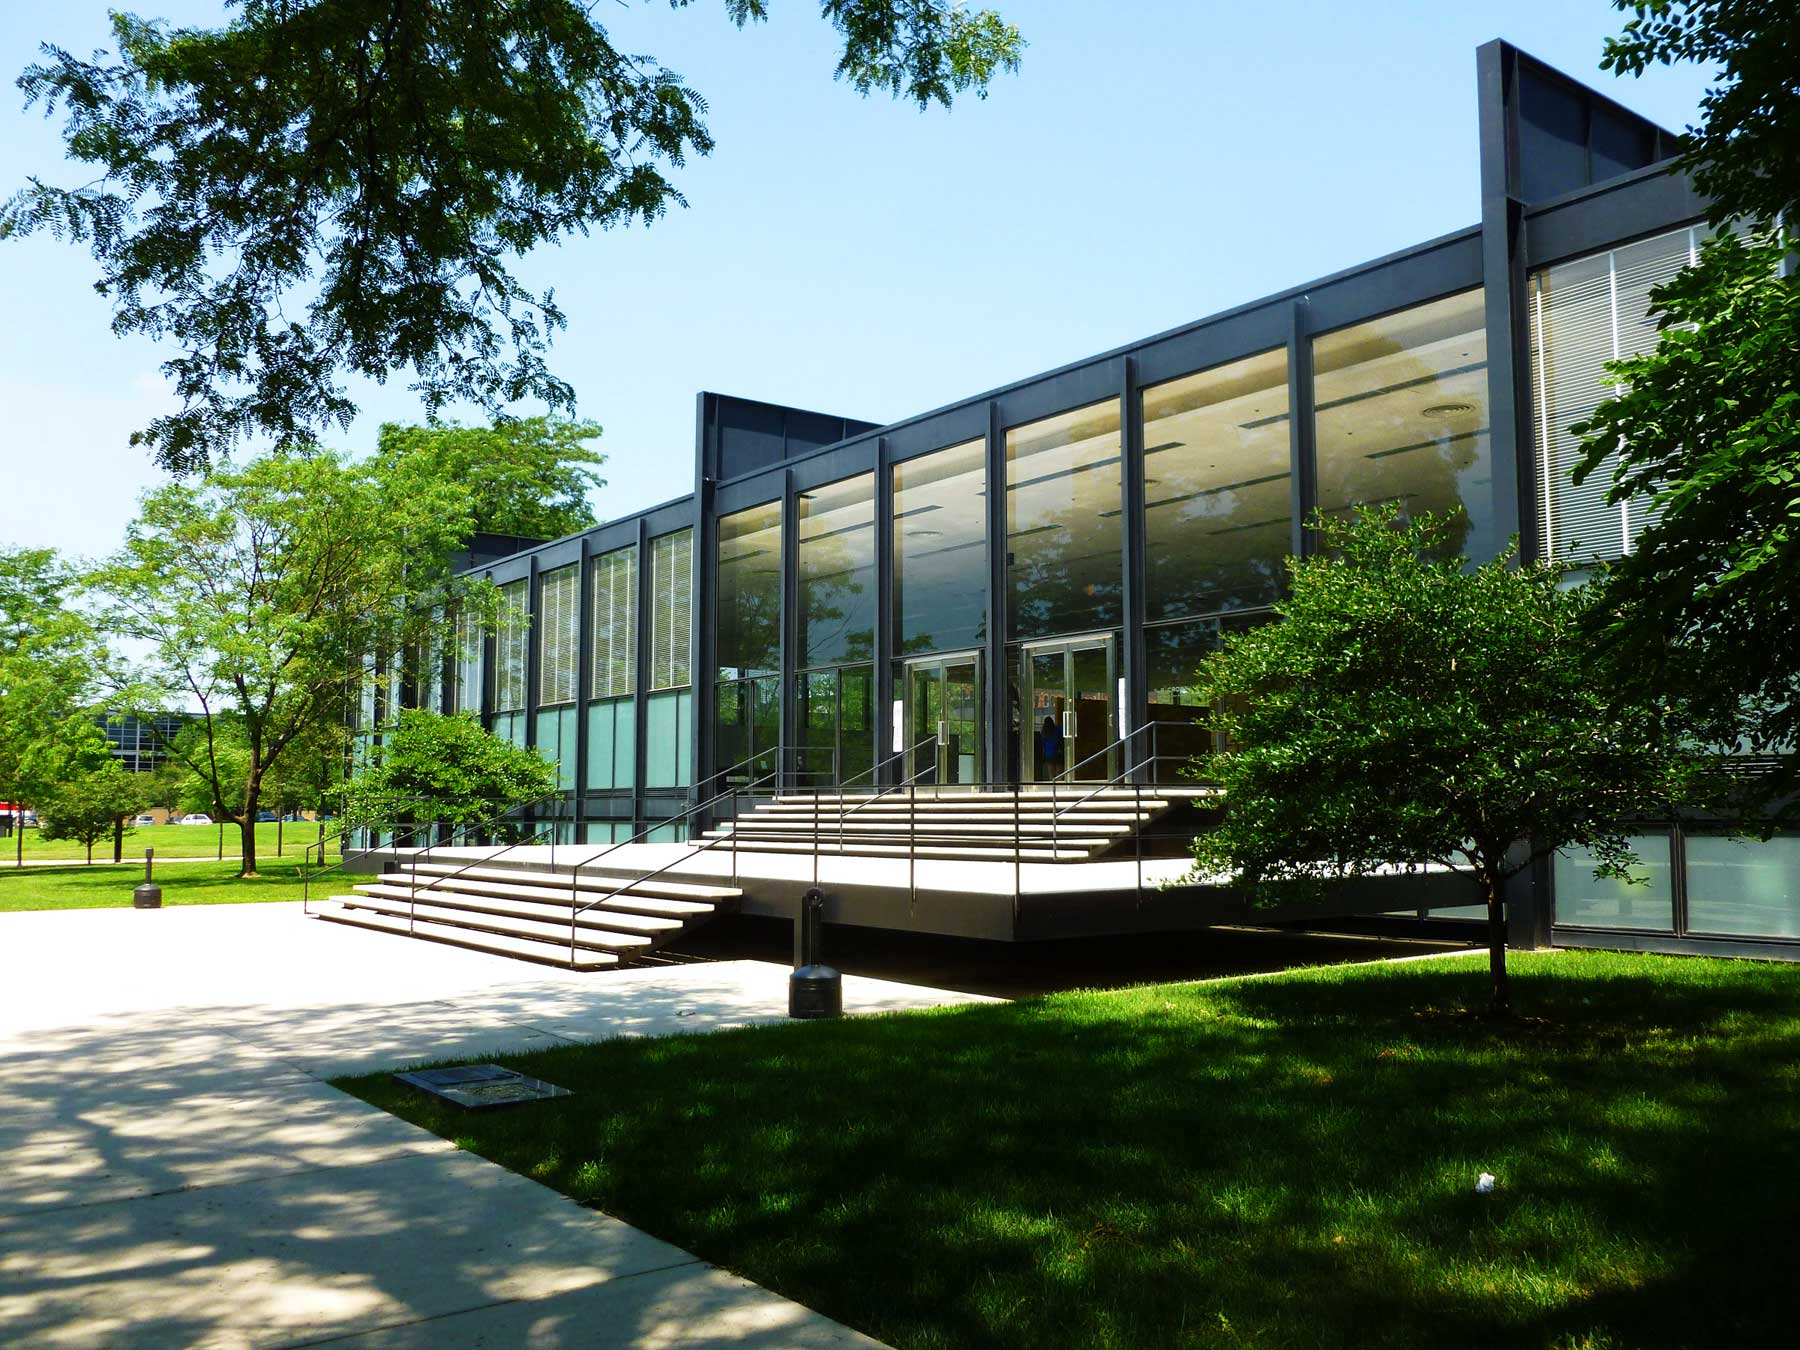 mies van der rohe and the significance of fact  Metamechanics